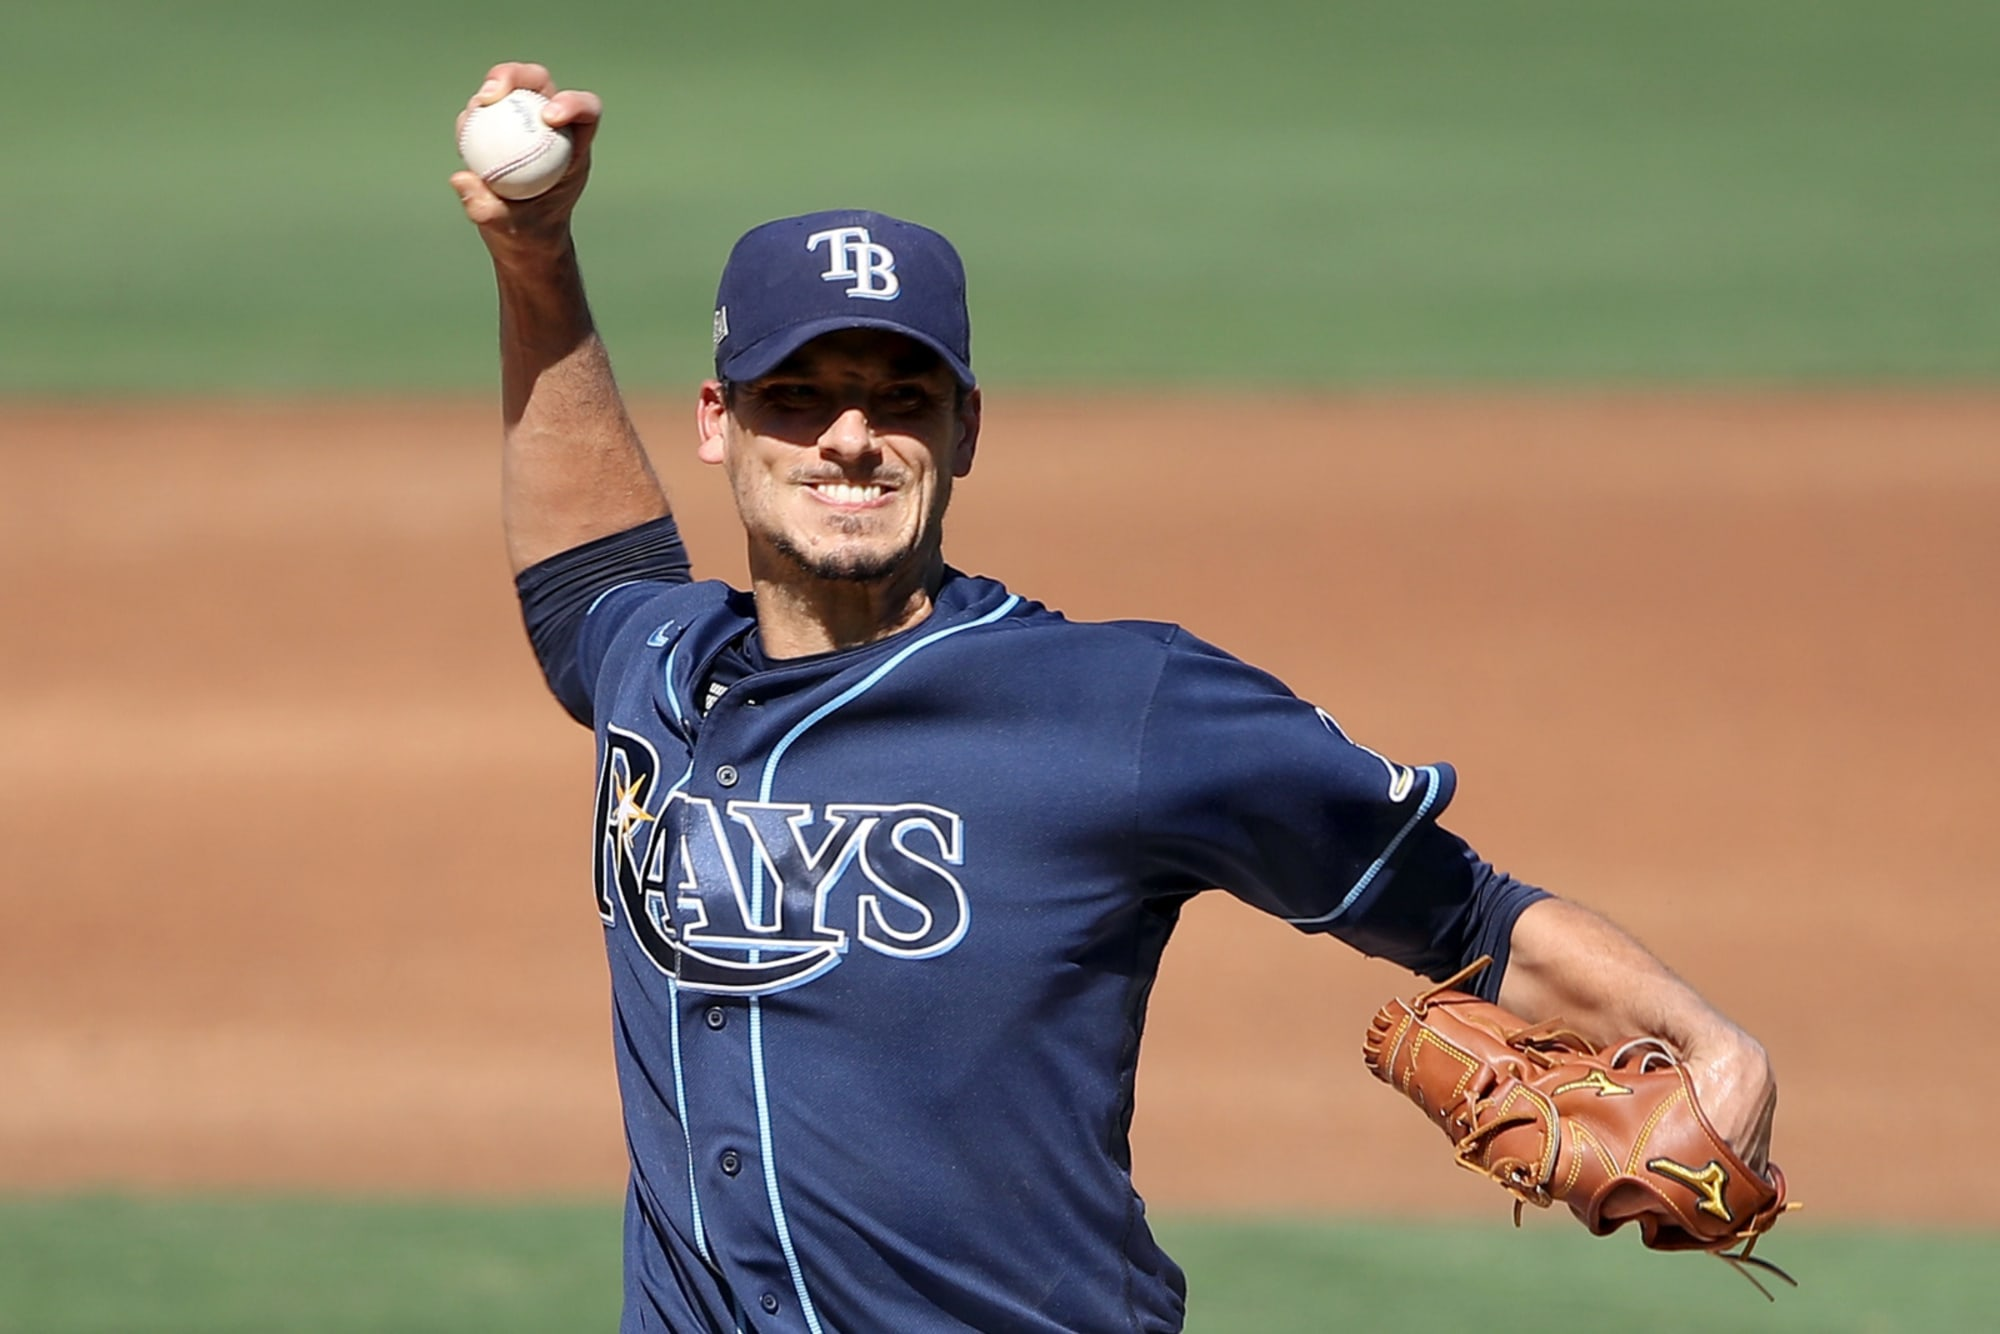 tampa bay rays it all comes down to charlie morton tampa bay rays it all comes down to